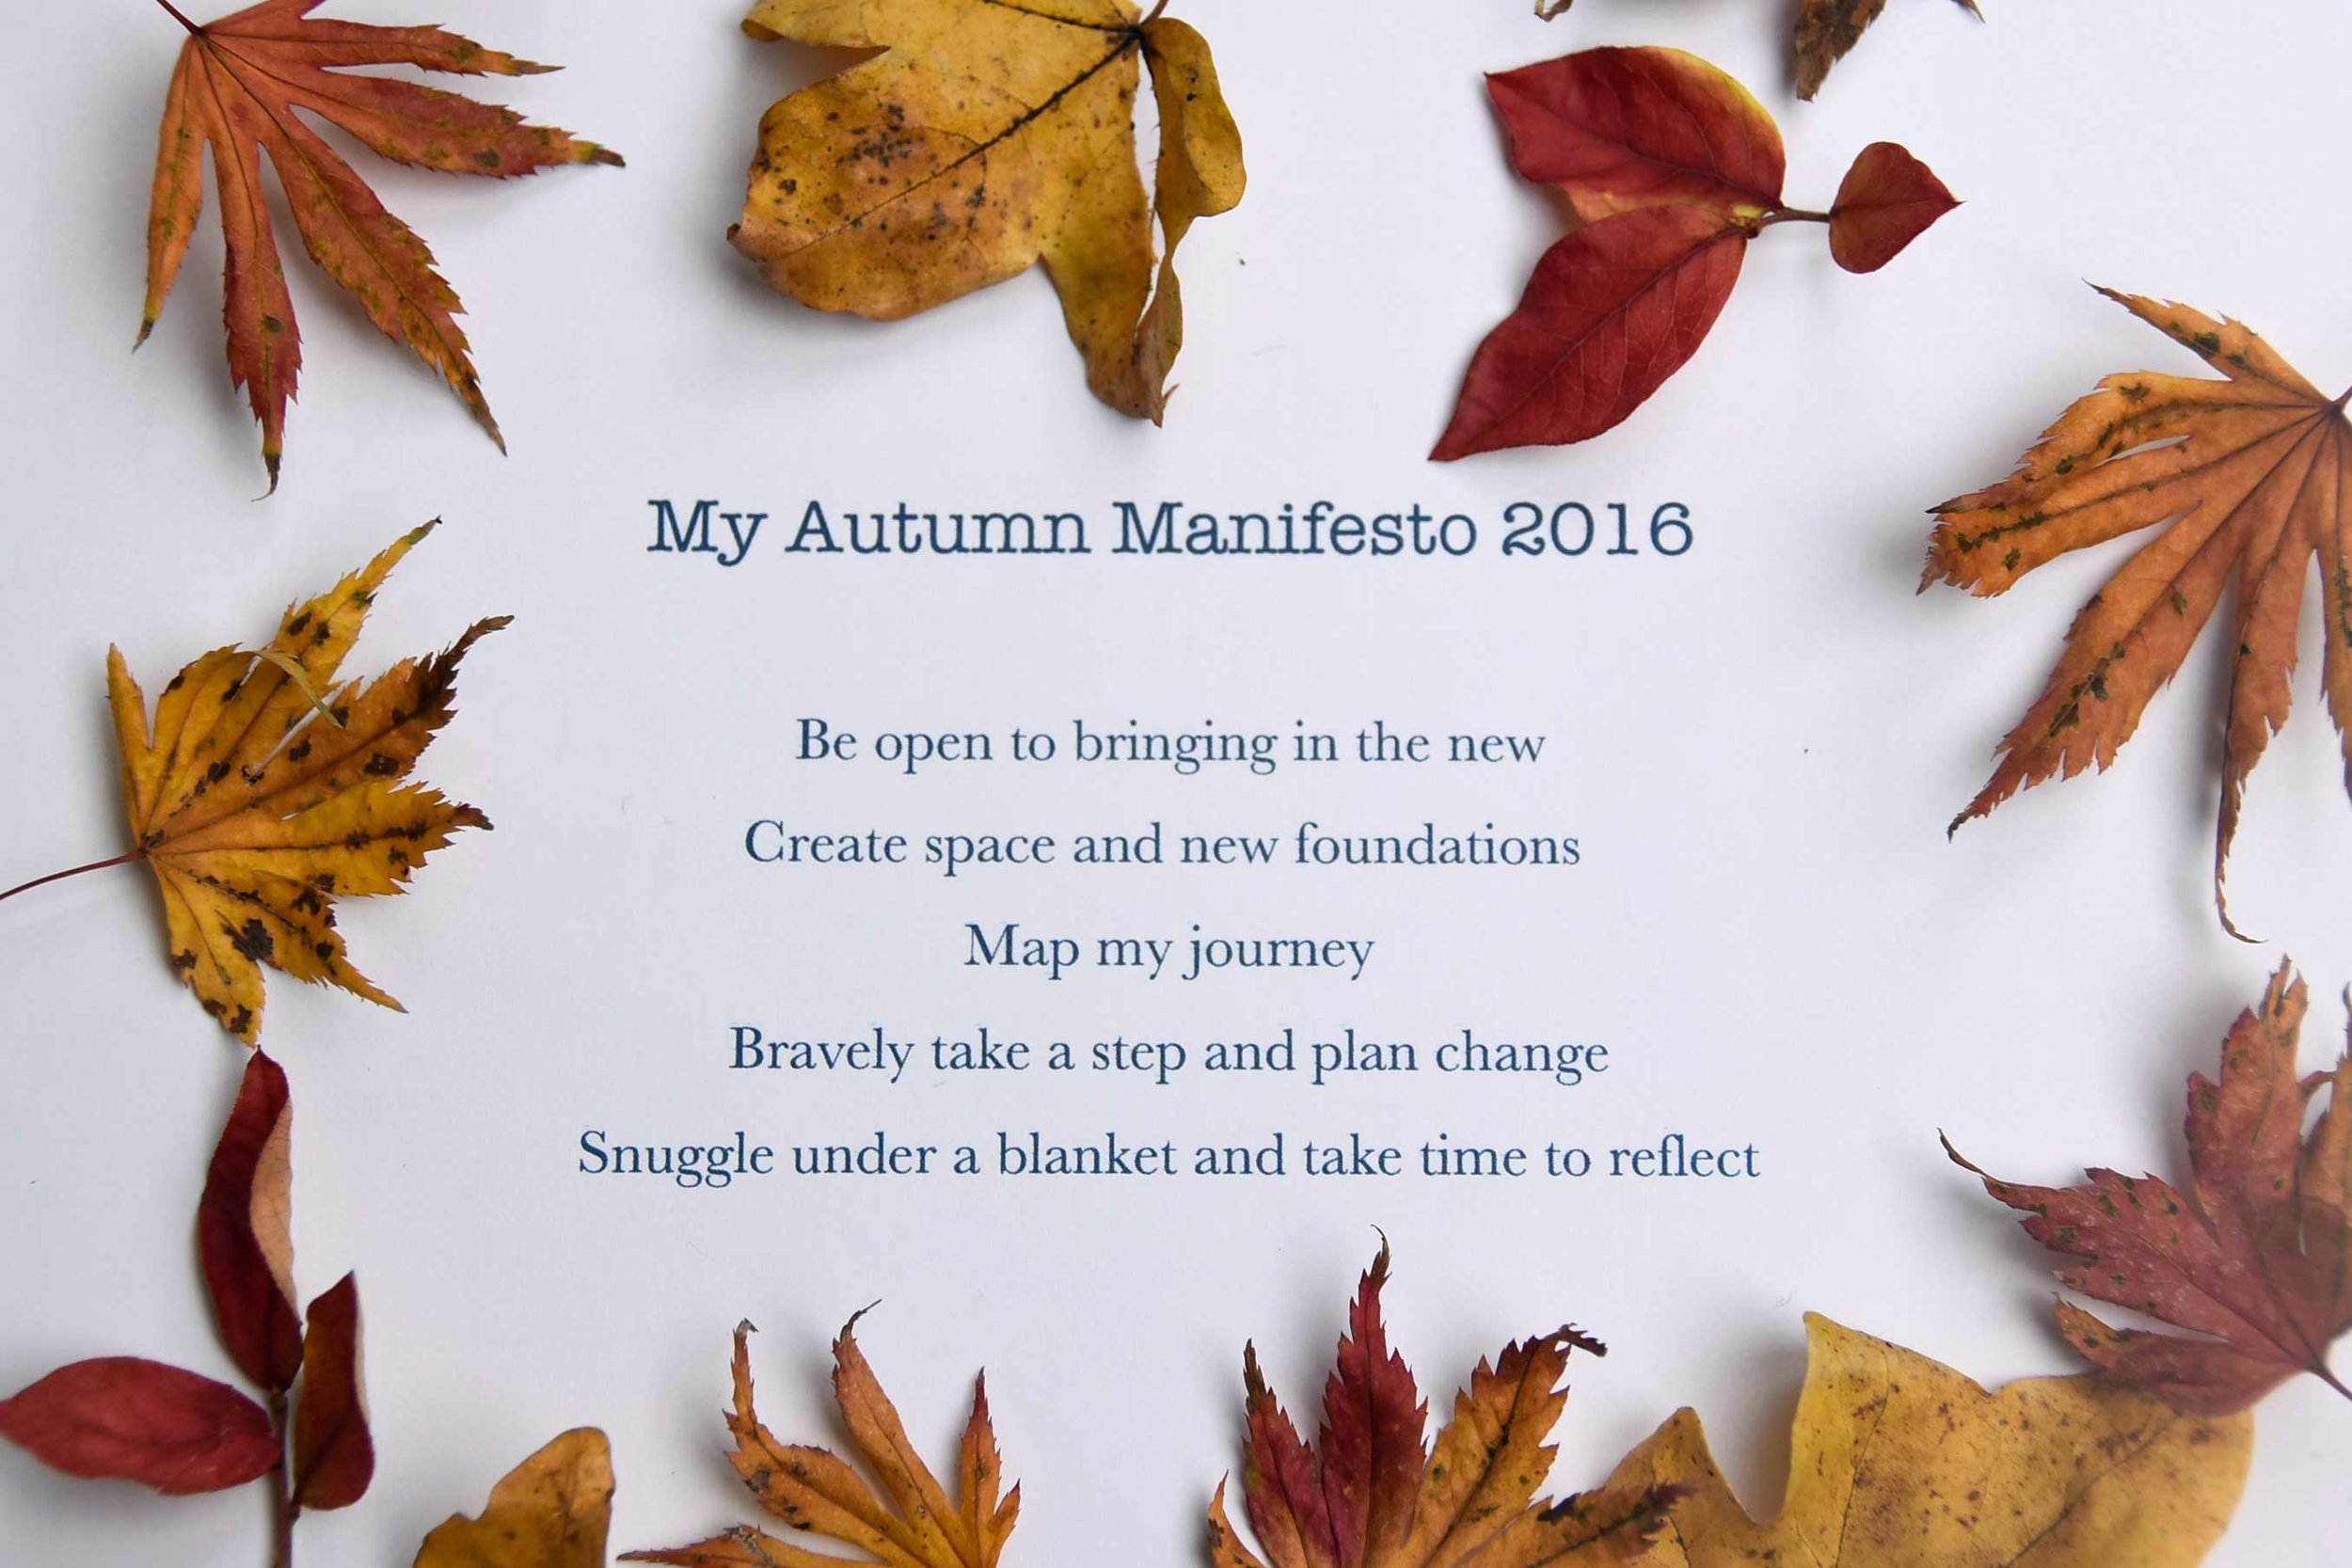 My autumn manifesto 2016